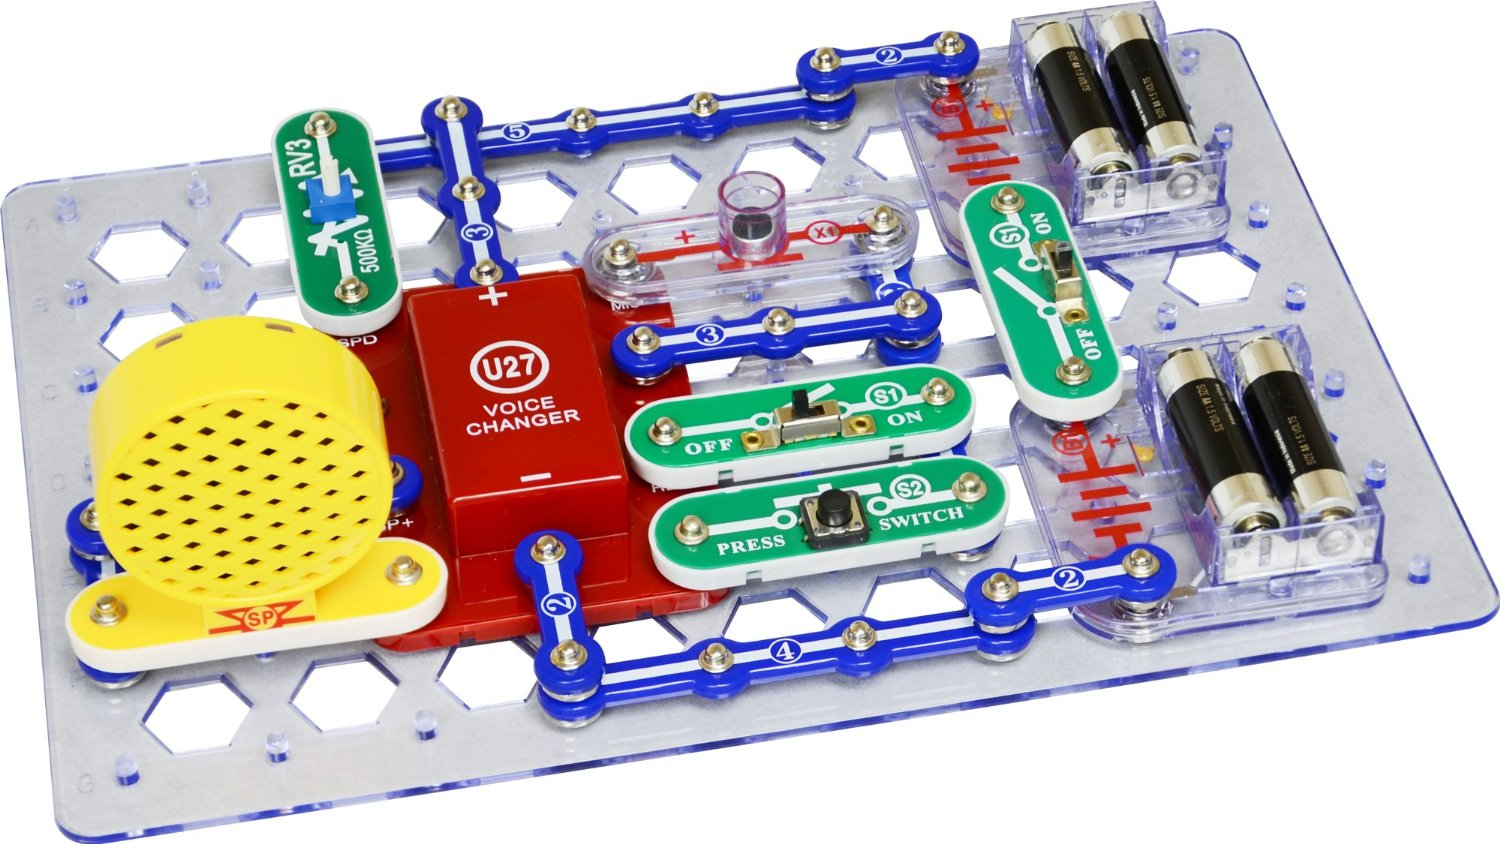 Elenco Electronics Snap Circuits Ask Answer Wiring Diagram Scg125 Green Alternative Energy Kit Learning Sound R Deluxe Light Combo Electronic